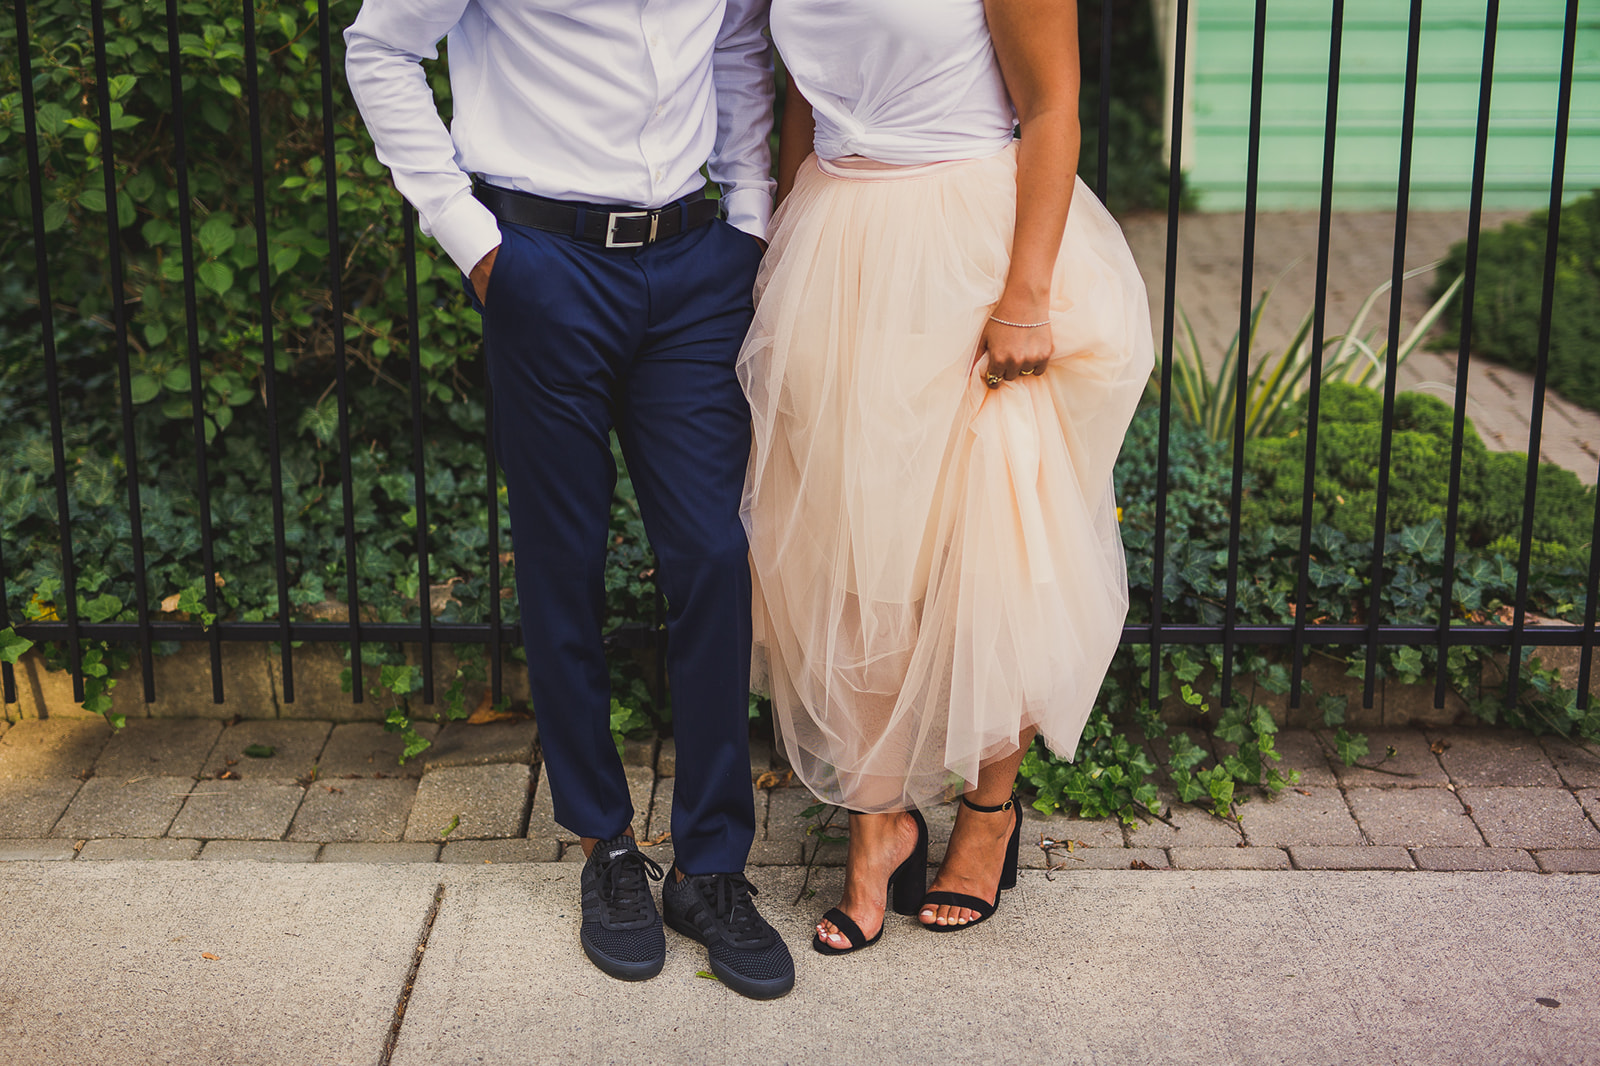 5 Tips for Choosing a Wedding Dress (From a Photographer!)